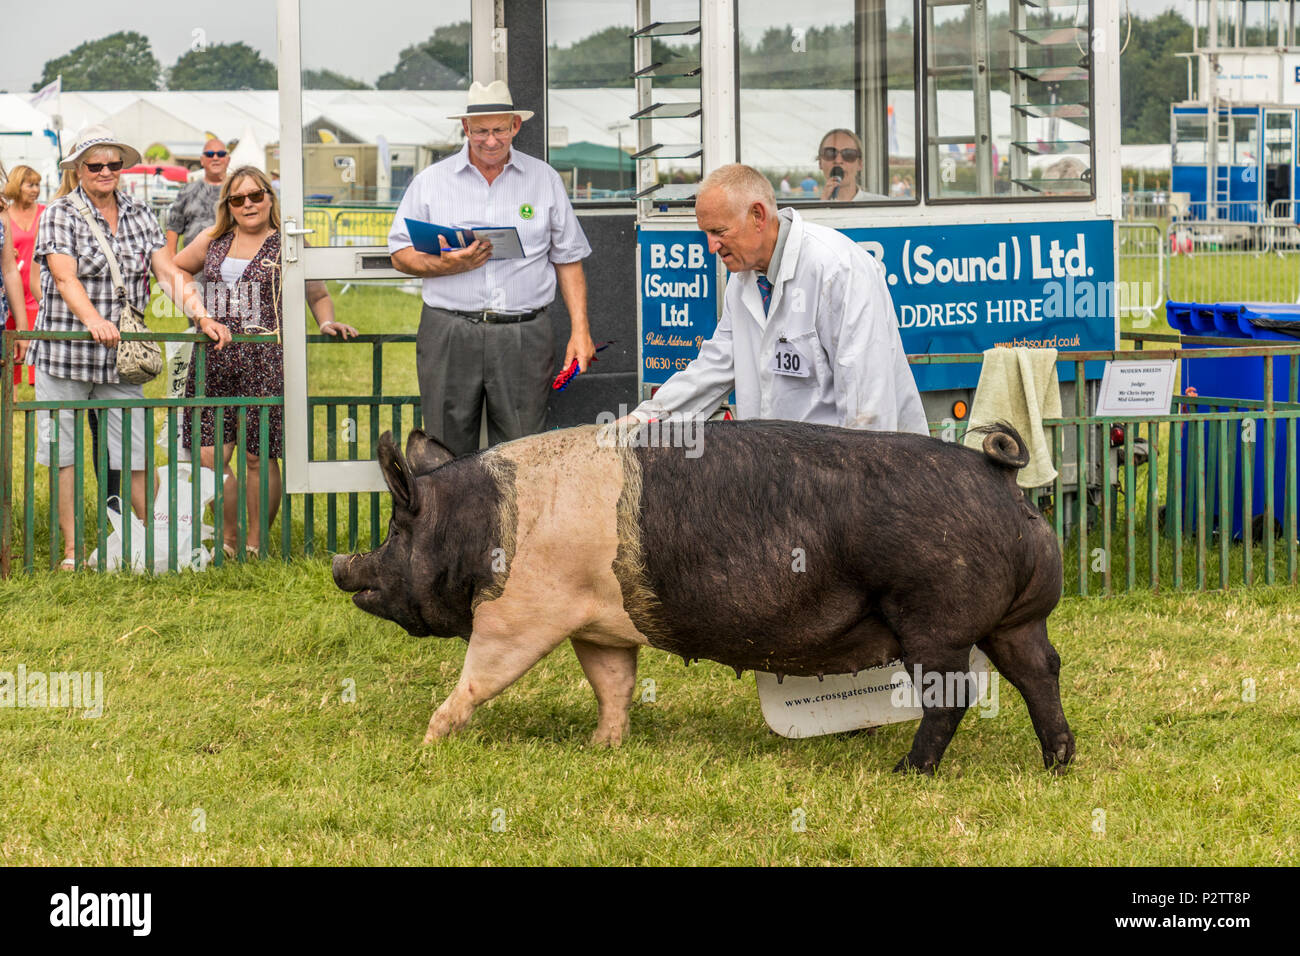 Contestants and judges with pigs at Royal Cheshire Show Tabley Showground Cheshire UK - Stock Image